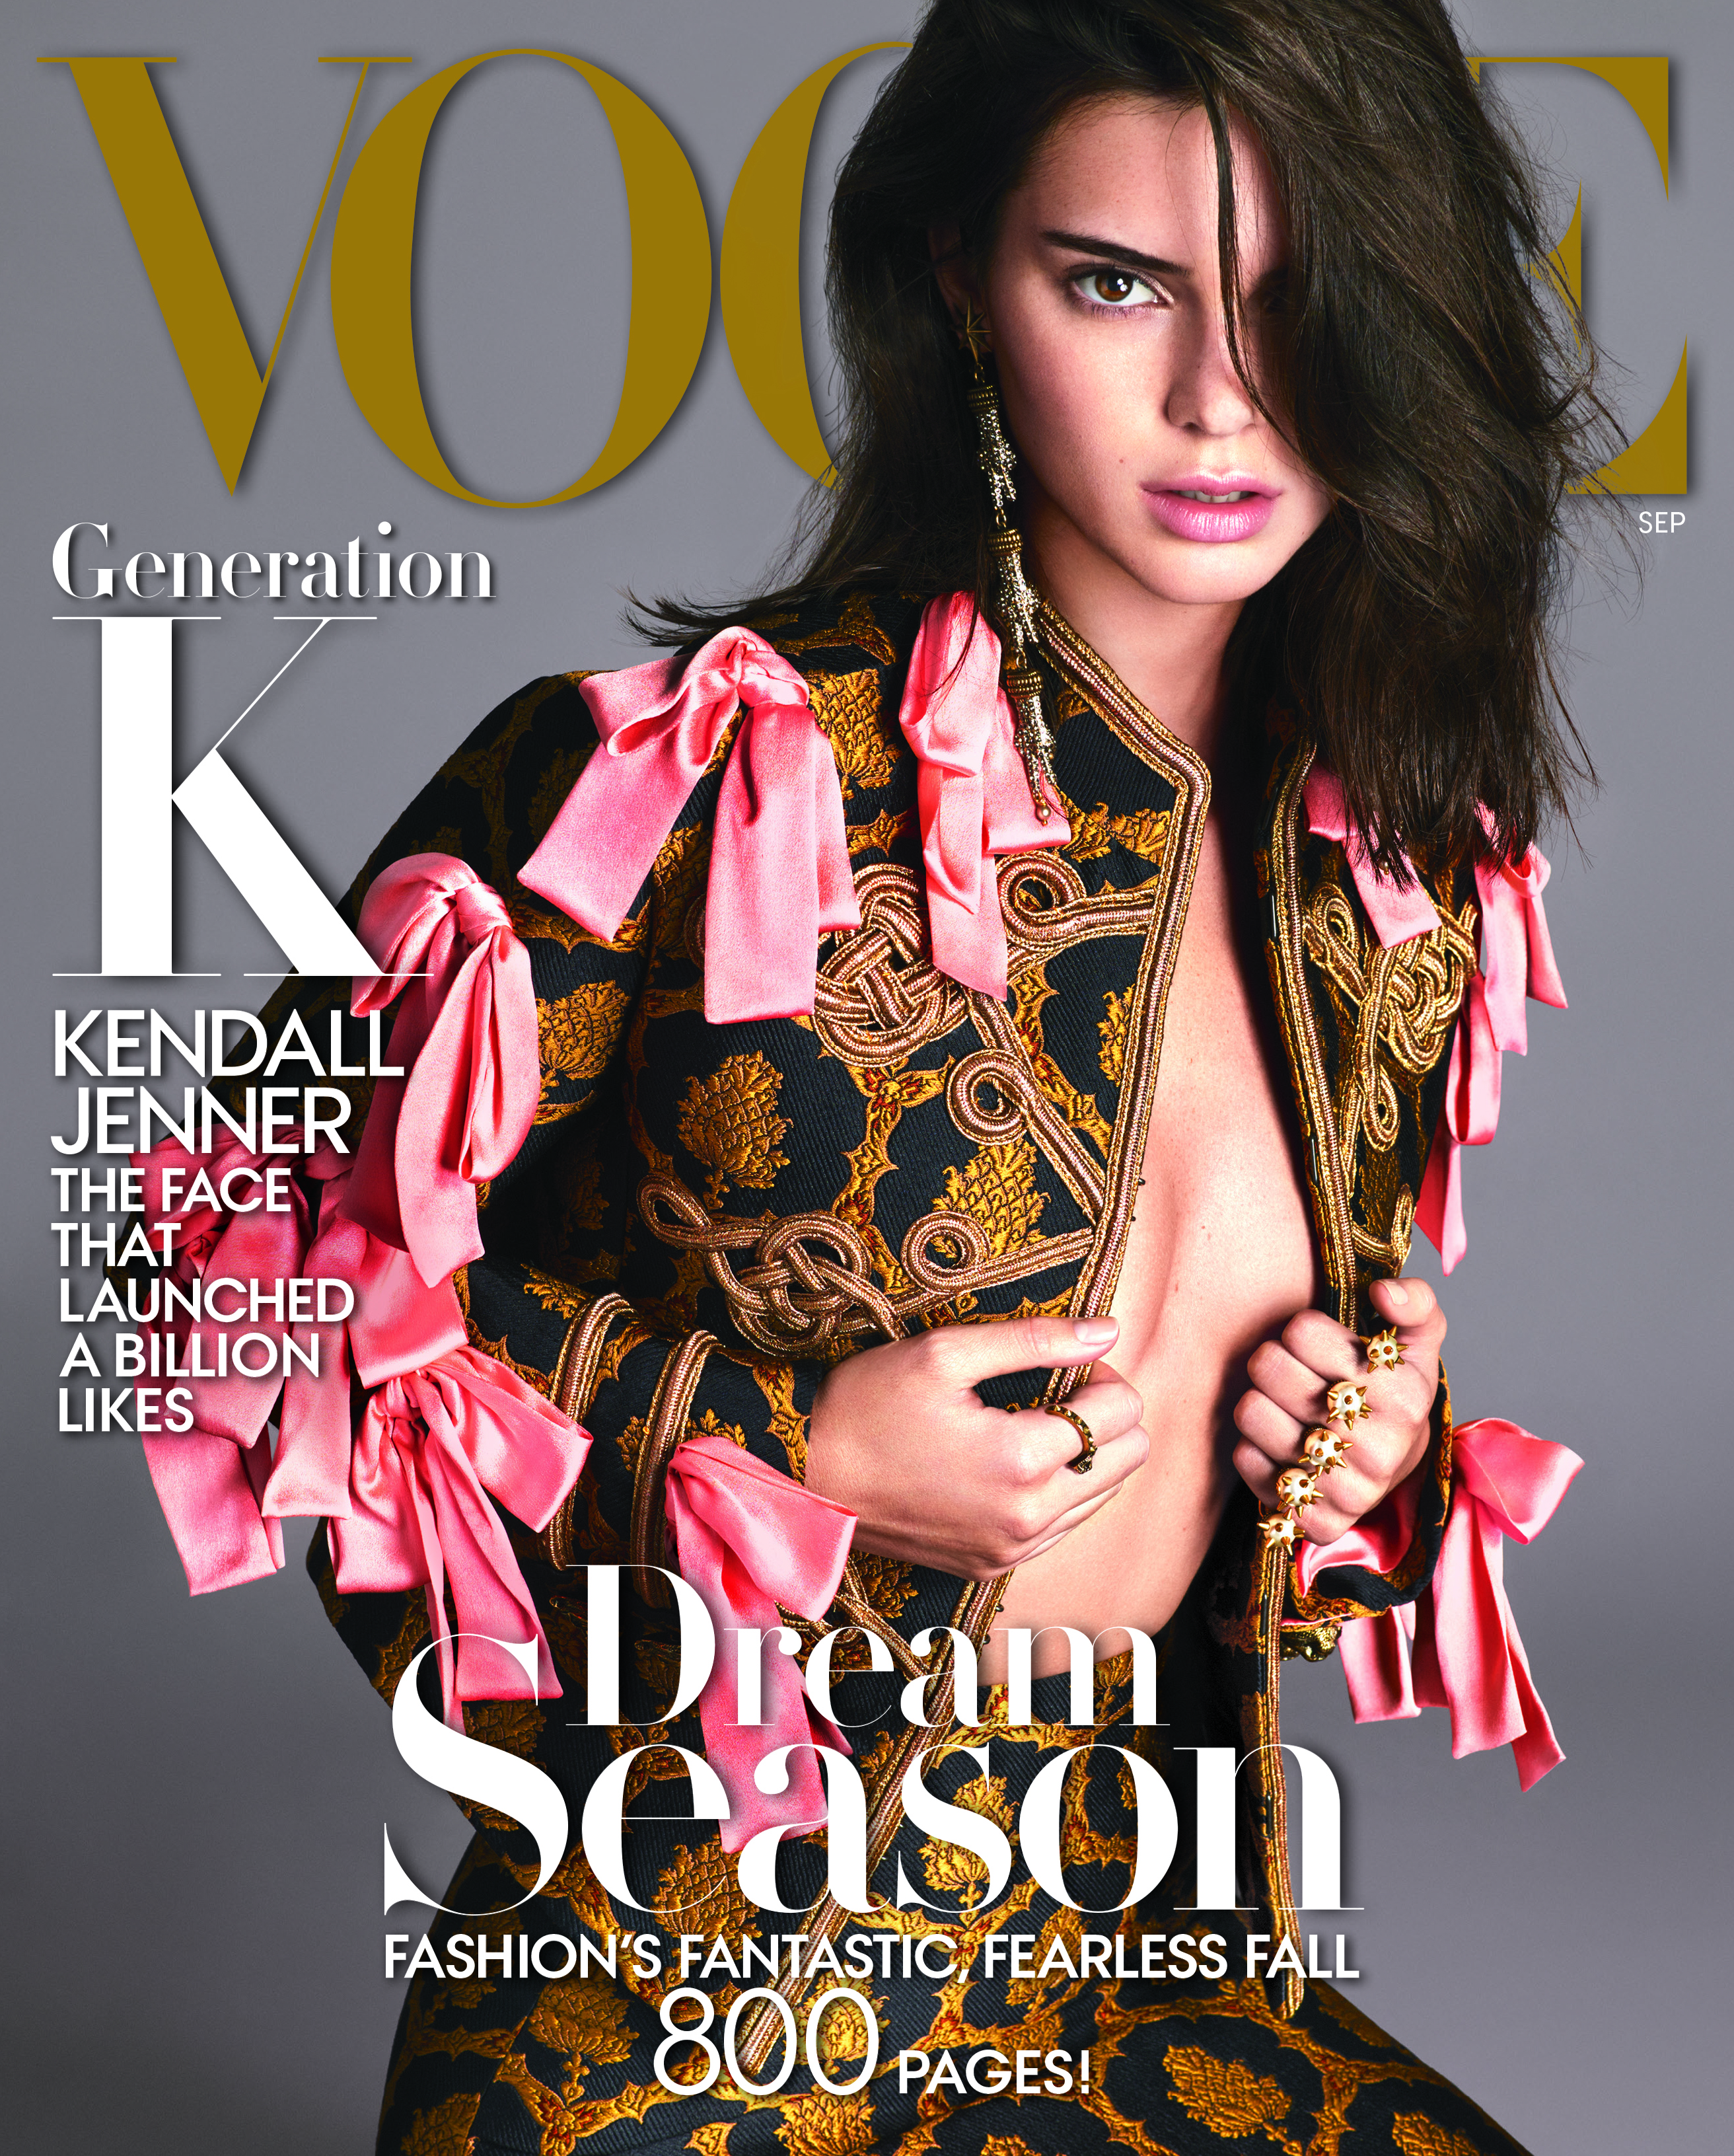 f674b8a9a768b9 Kendall Jenner Covers Vogue s September 2016 Issue